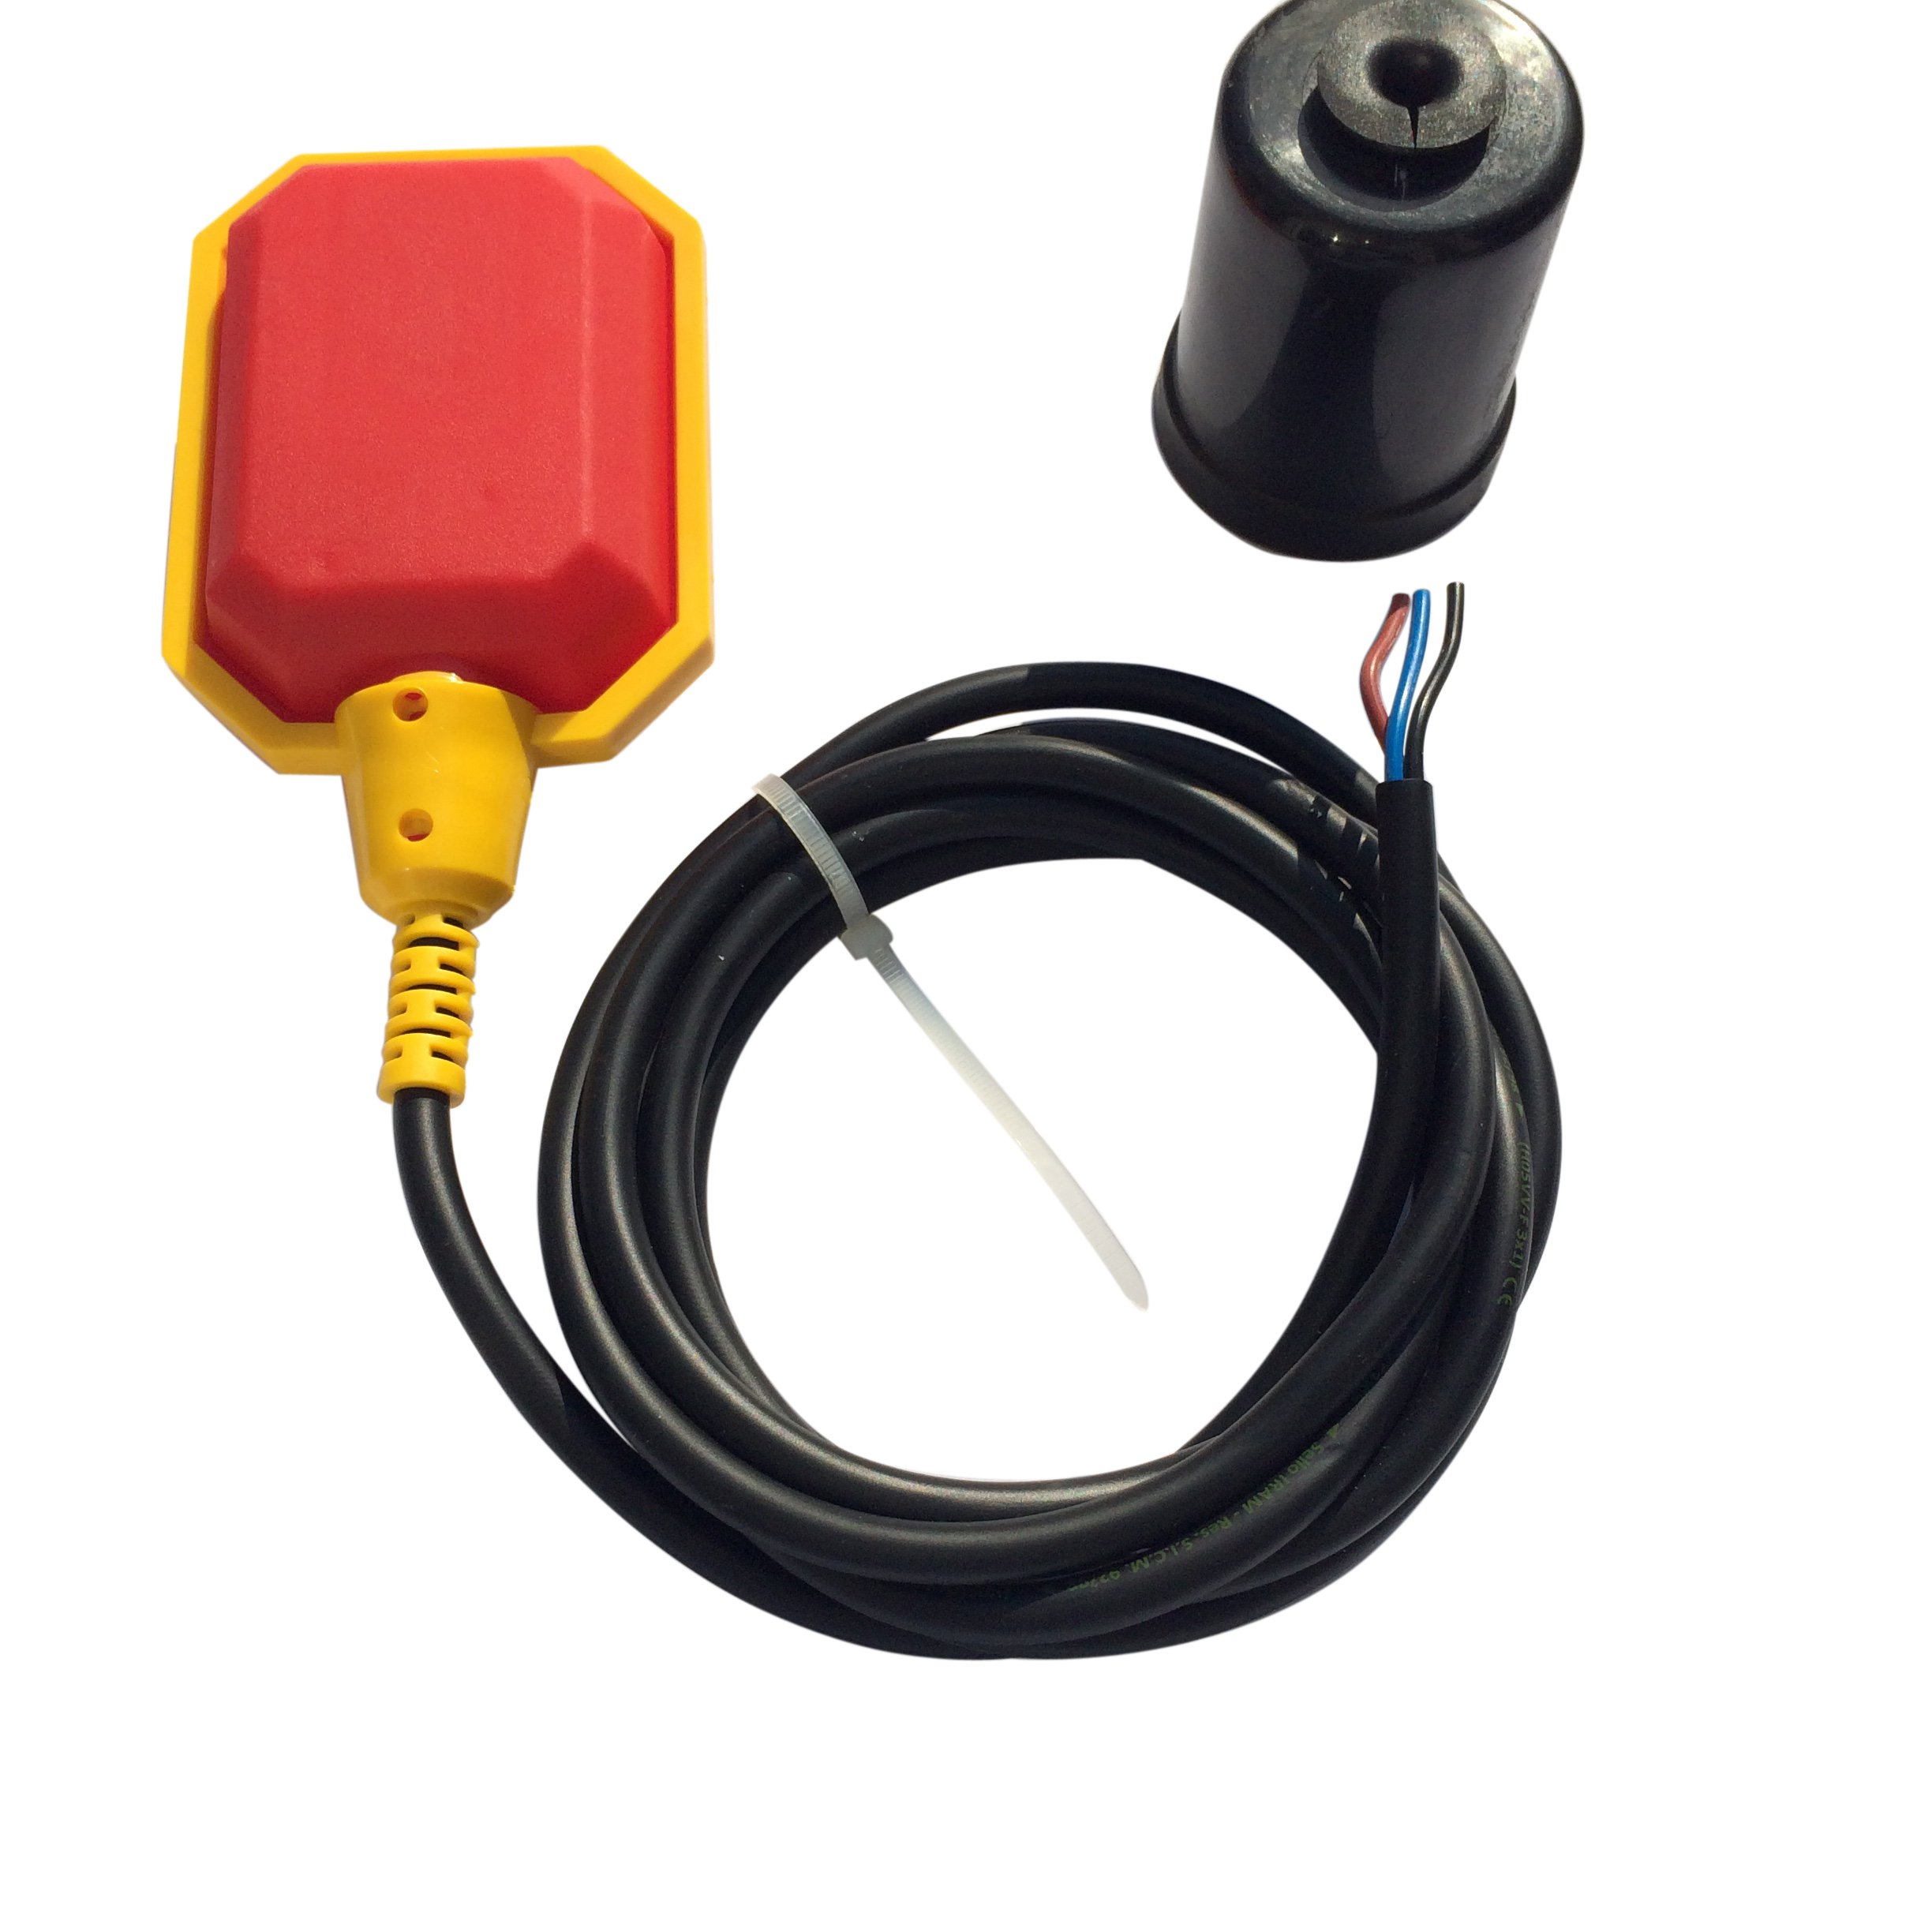 Float Switch w / 10 ft. (3 Meter) Cable, Water Tank, Sump Pump (5 Year Warranty) by Sump Alarm